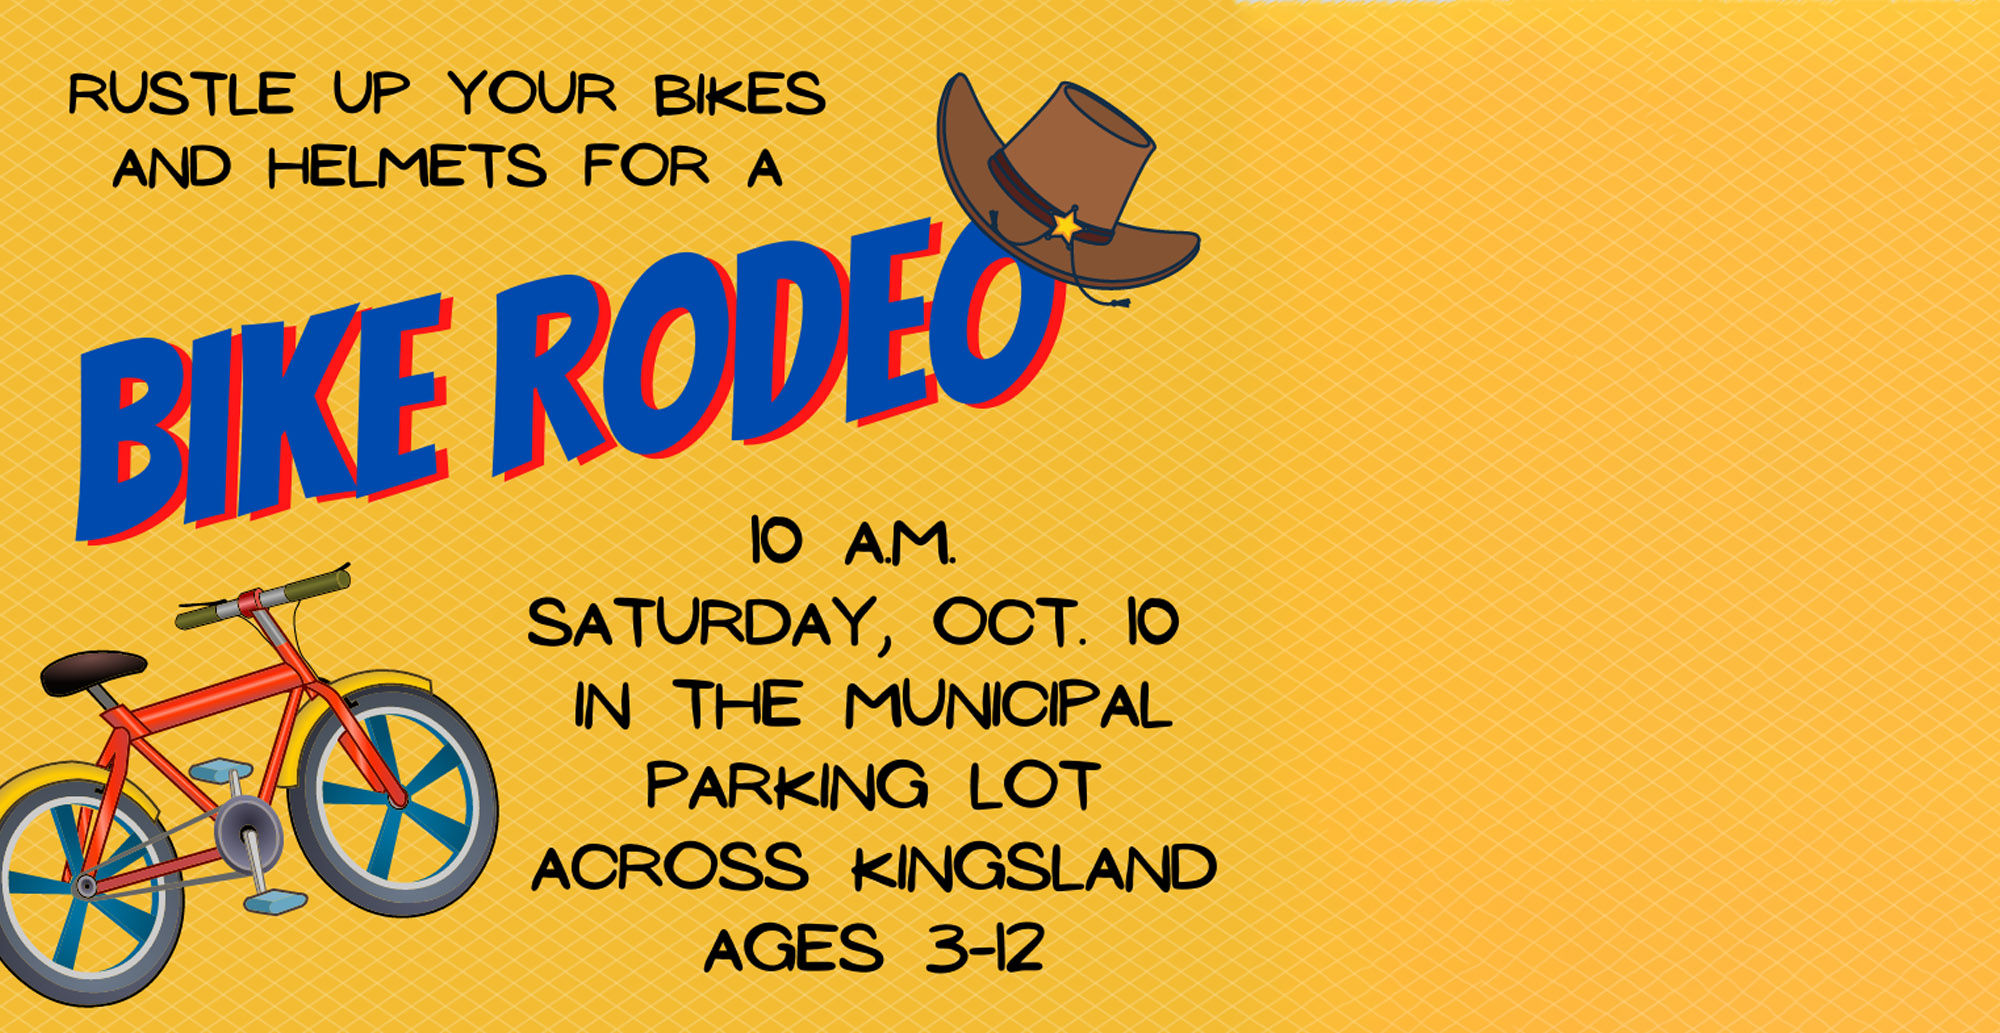 Bike Rodeo U. City